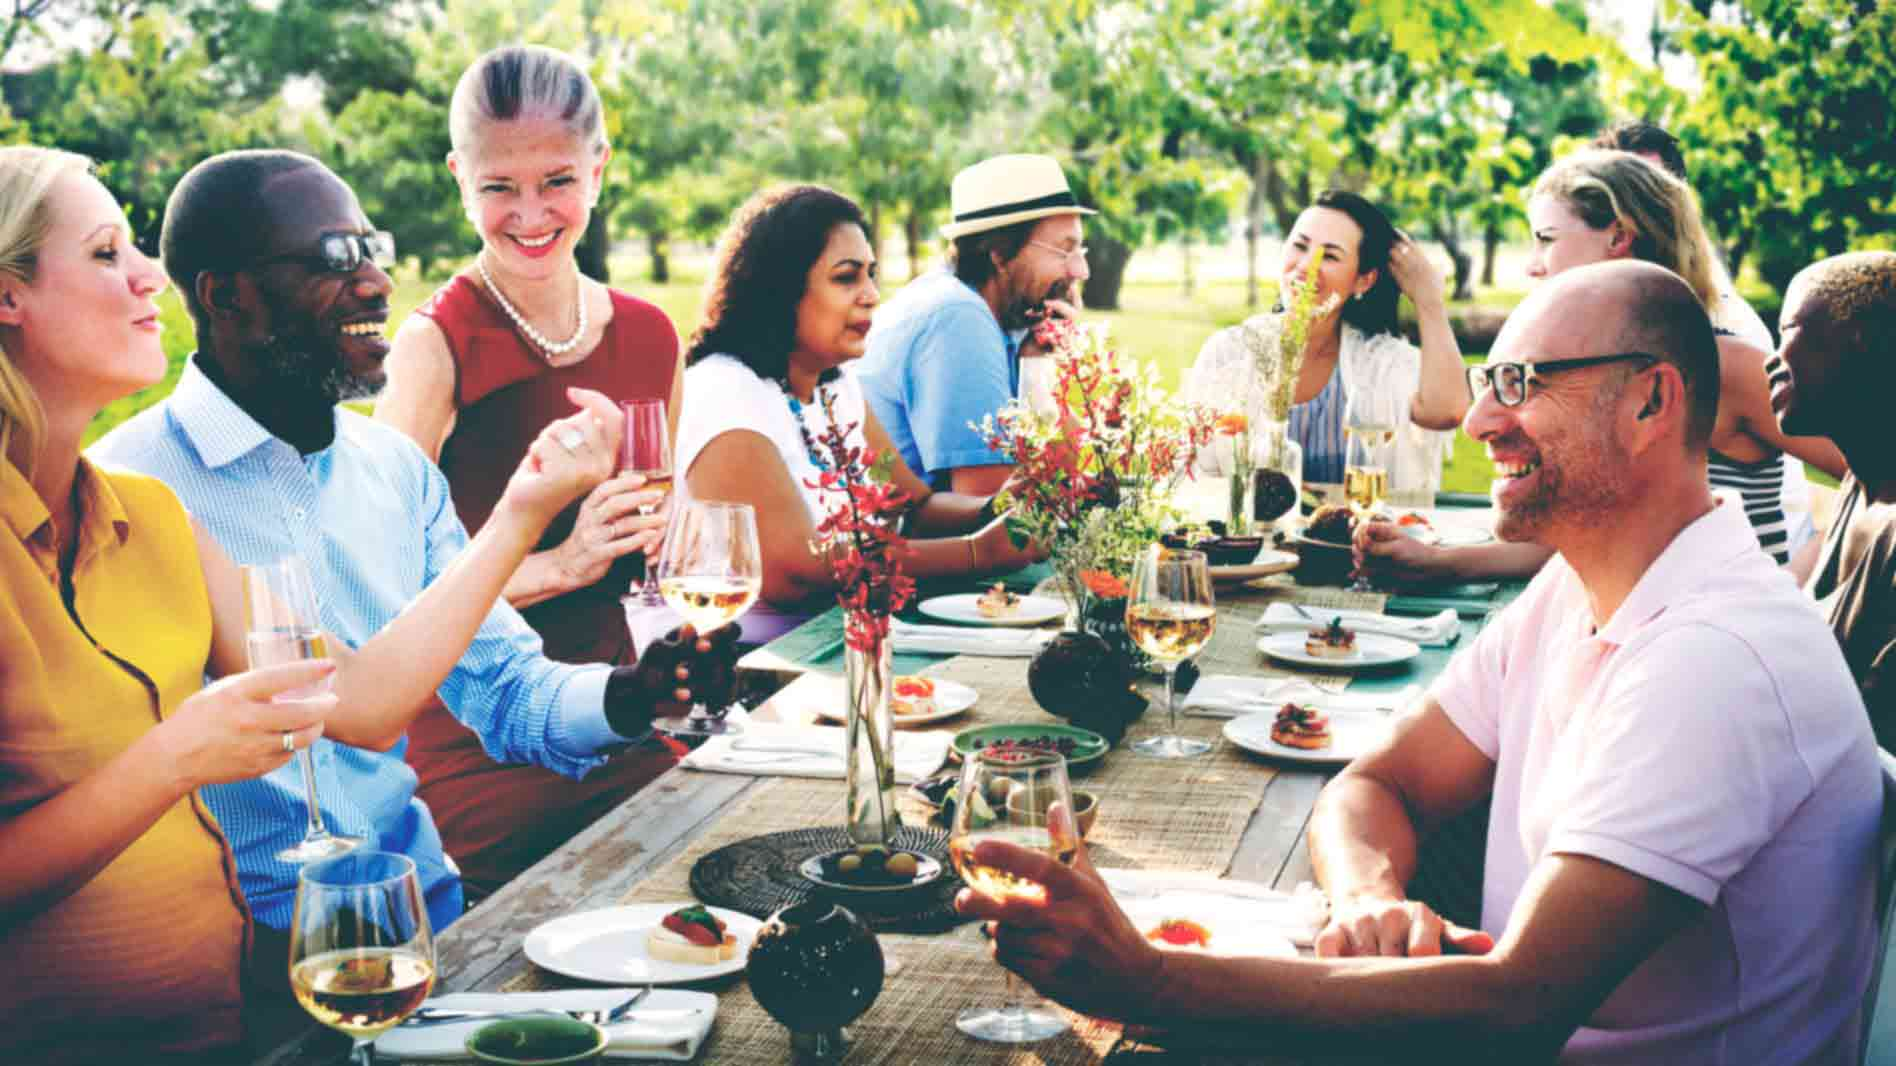 Guerrilla dining: Business insights from an underground sensation